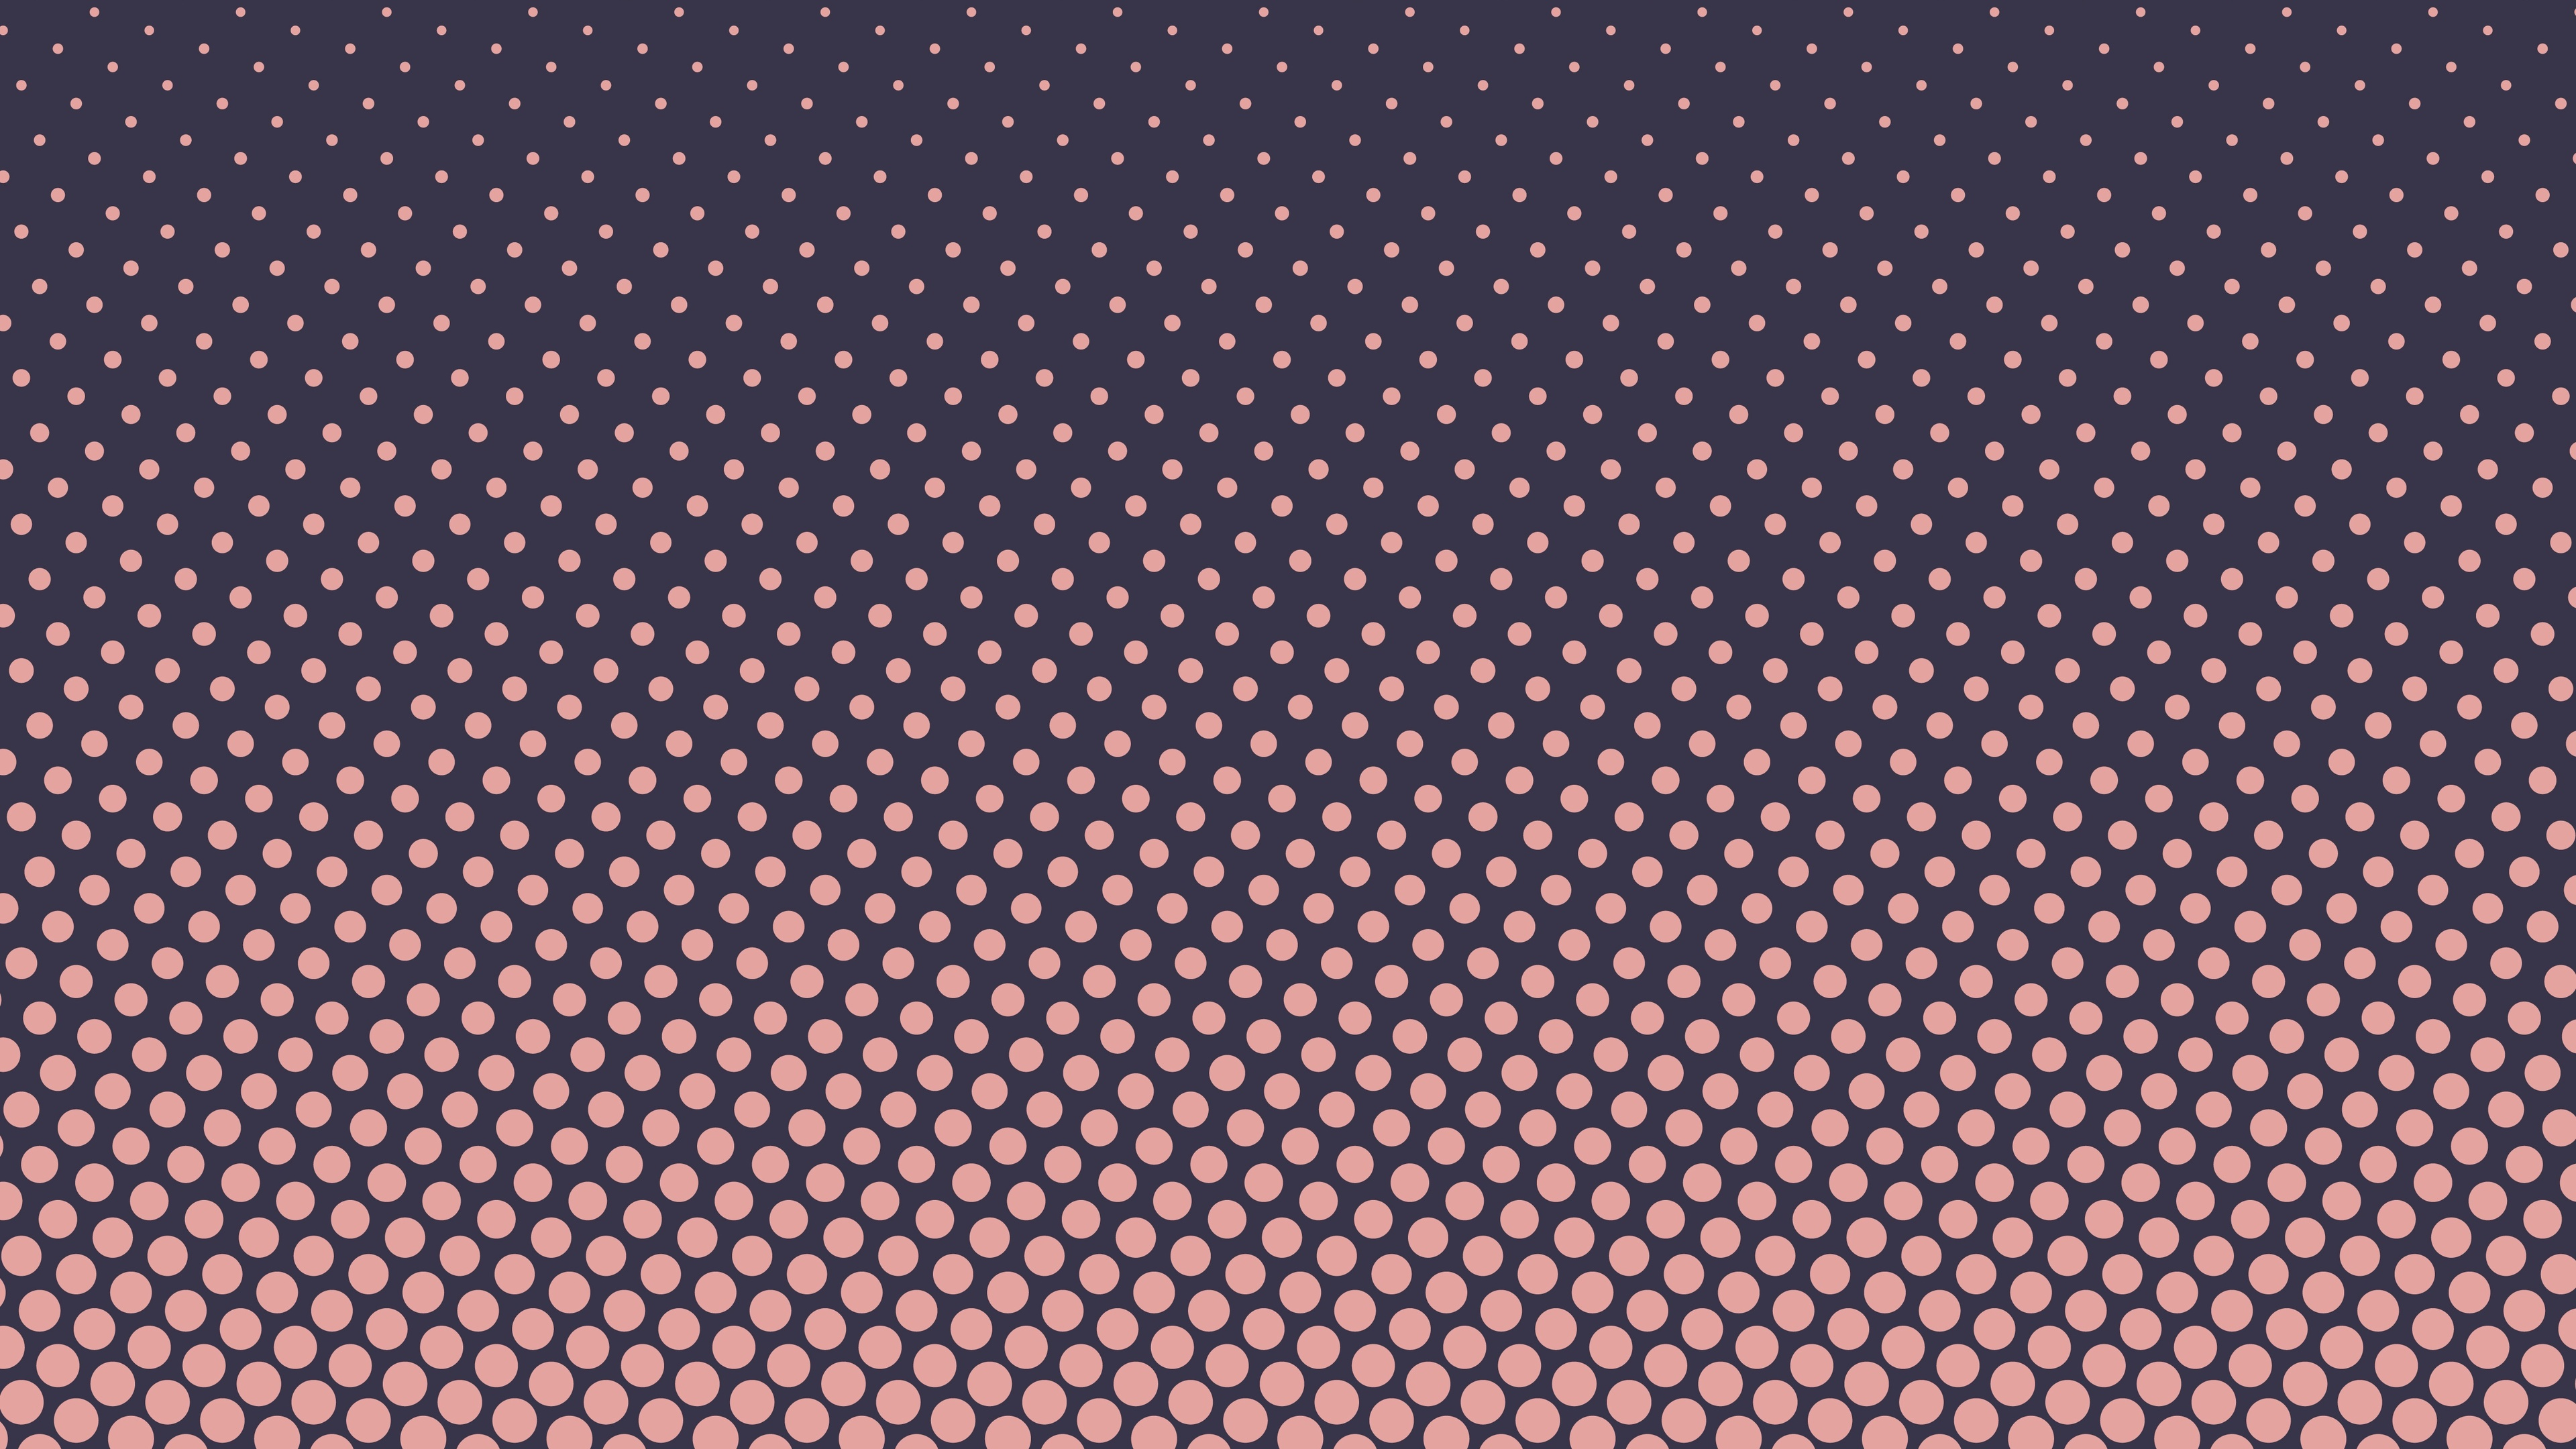 abstract dots texture simple 5k 1539371092 - Abstract Dots Texture Simple 5k - texture wallpapers, simple background wallpapers, hd-wallpapers, dots wallpapers, abstract wallpapers, 5k wallpapers, 4k-wallpapers